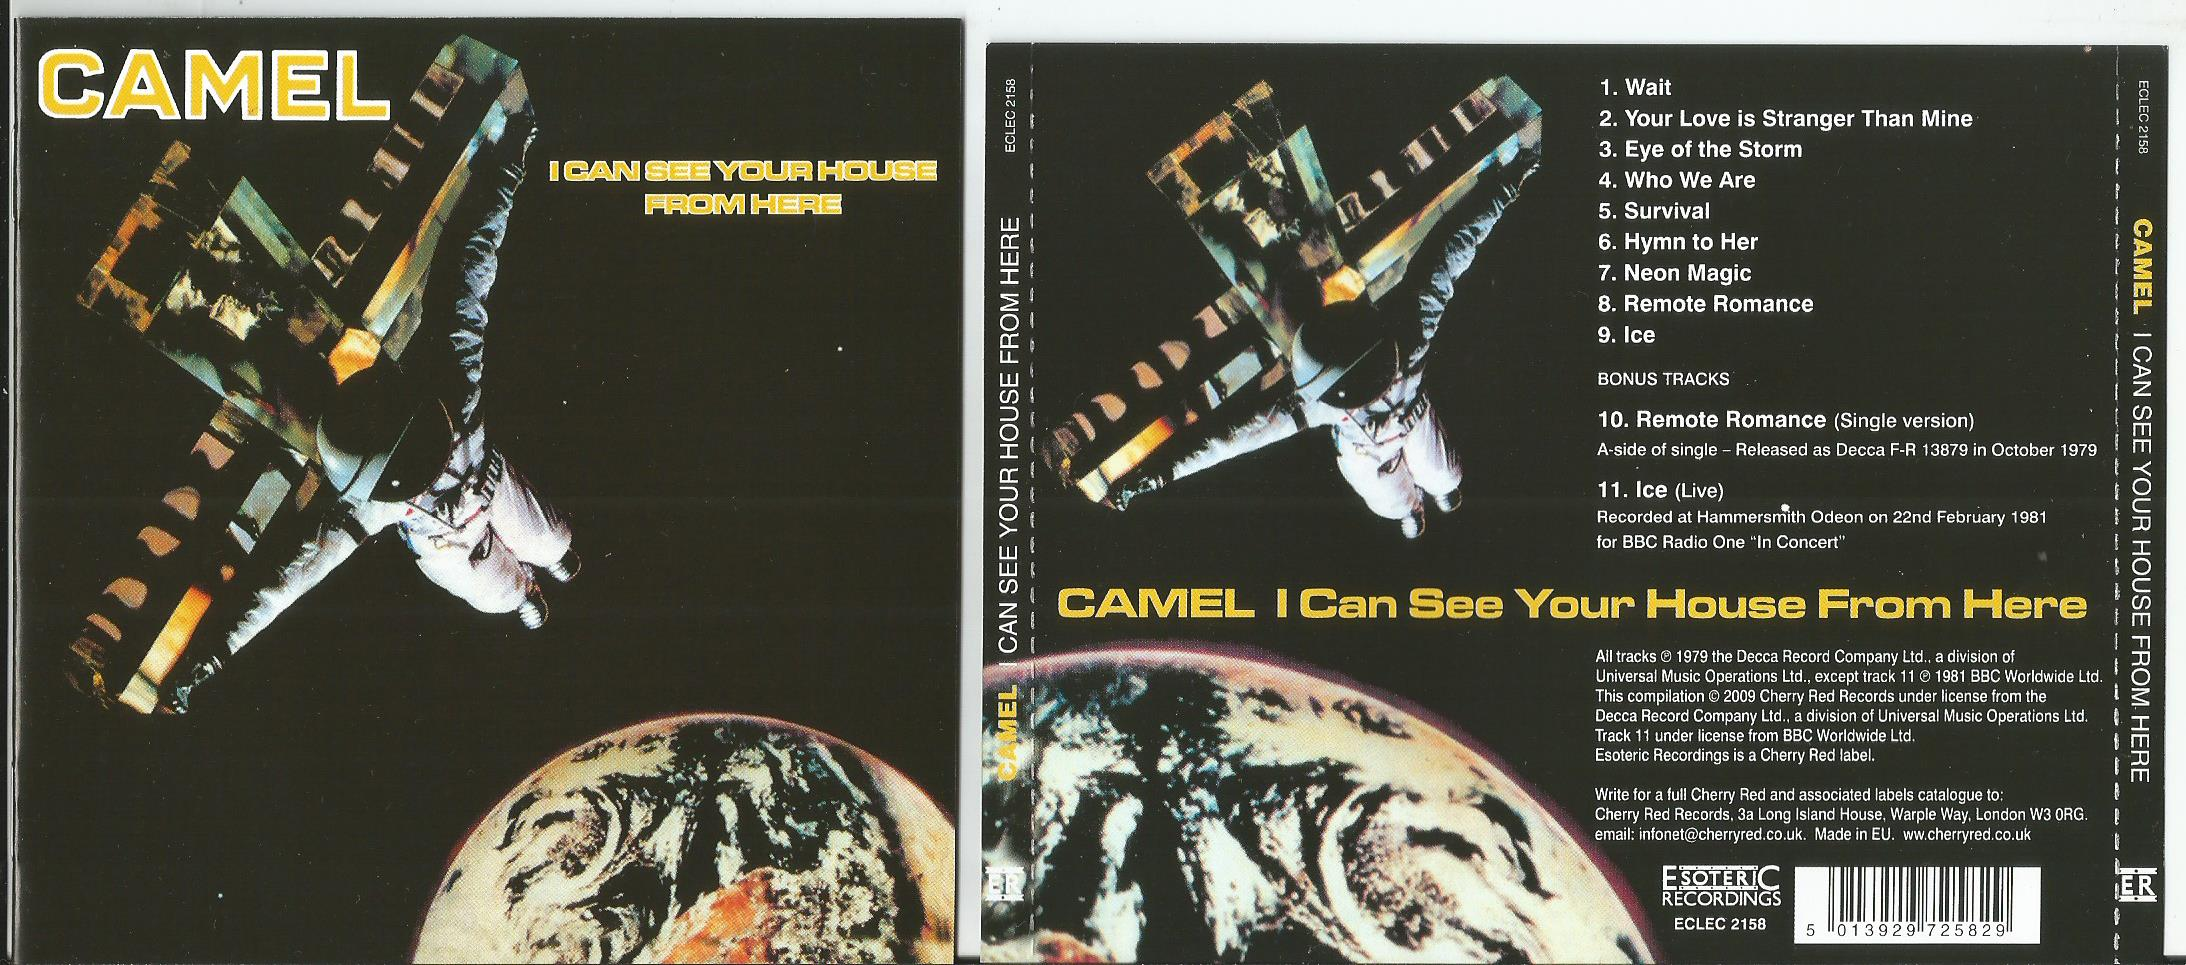 CAMEL I Can See Your House From Here + 2bonus tracks (16page booklet)